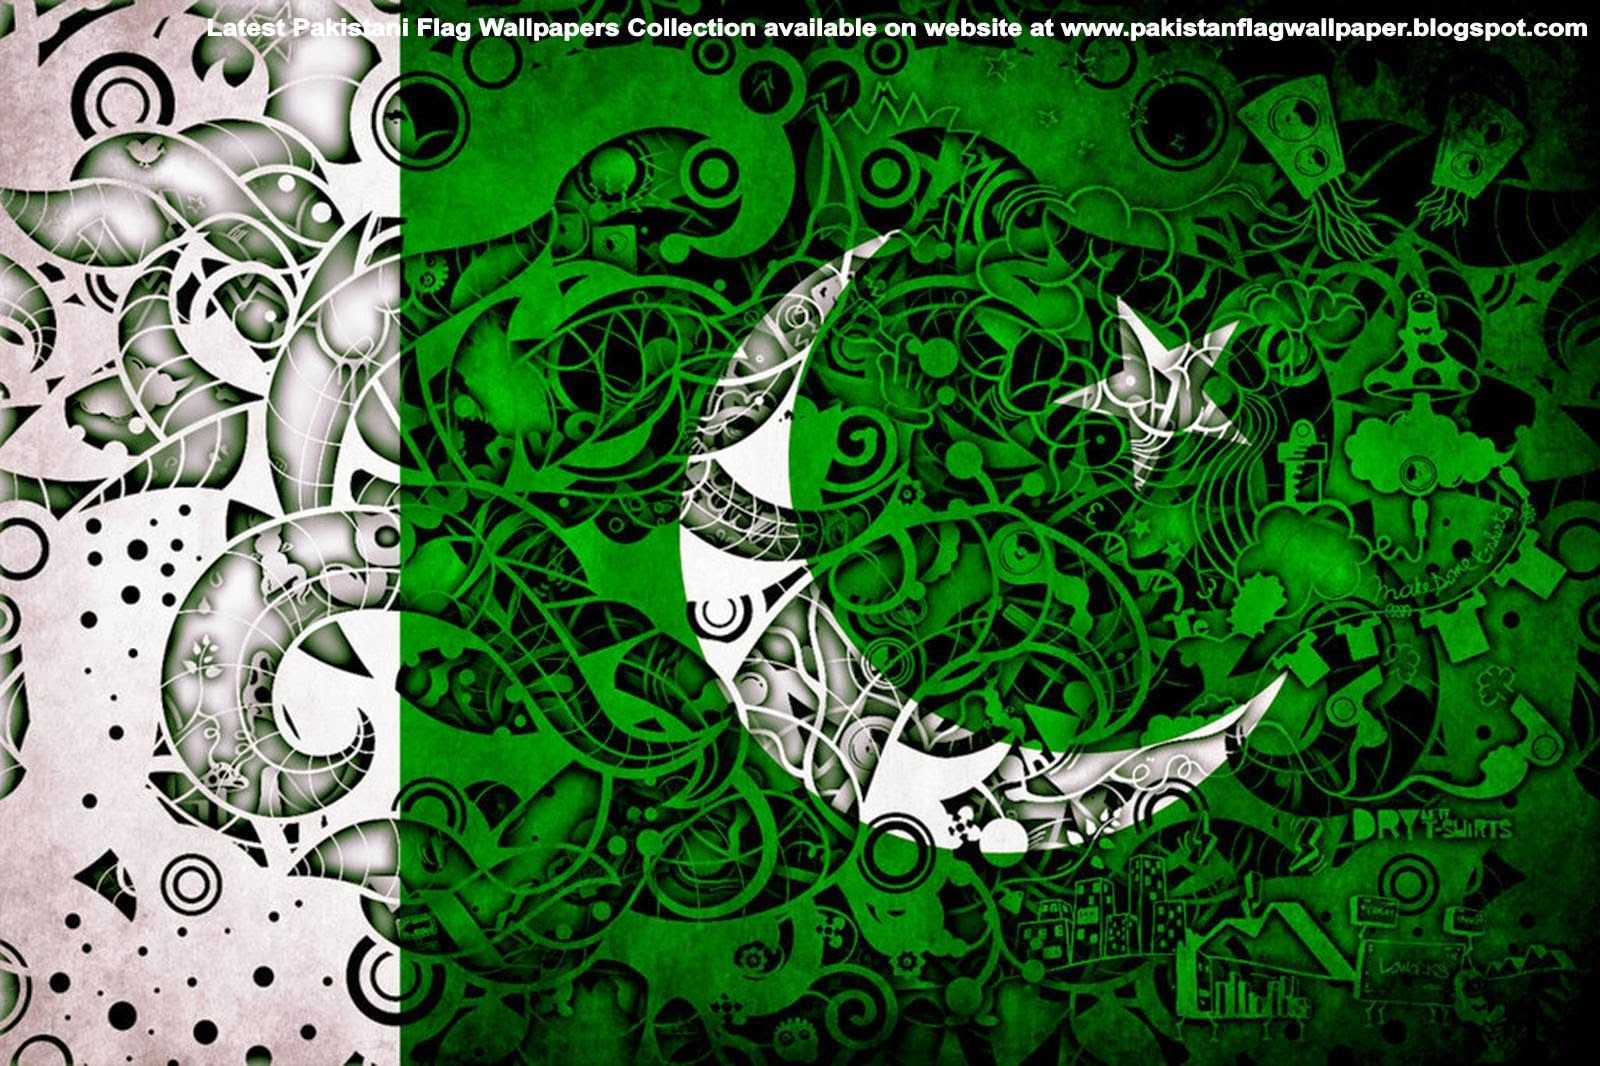 1600x1066 Pakistan Flag Wallpaper , (47+) Pictures